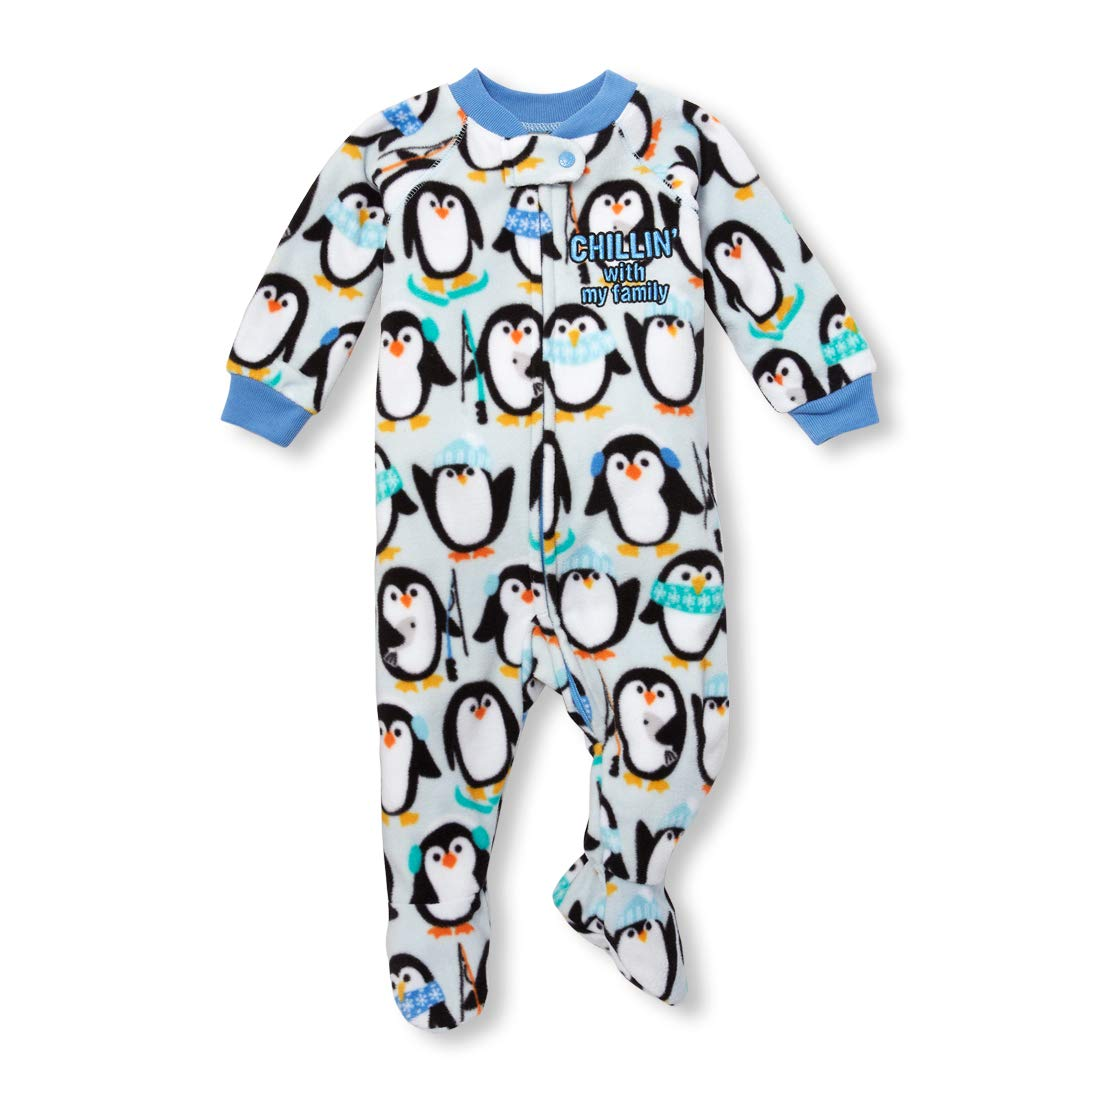 The Childrens Place Baby Boys Blanket Sleepers